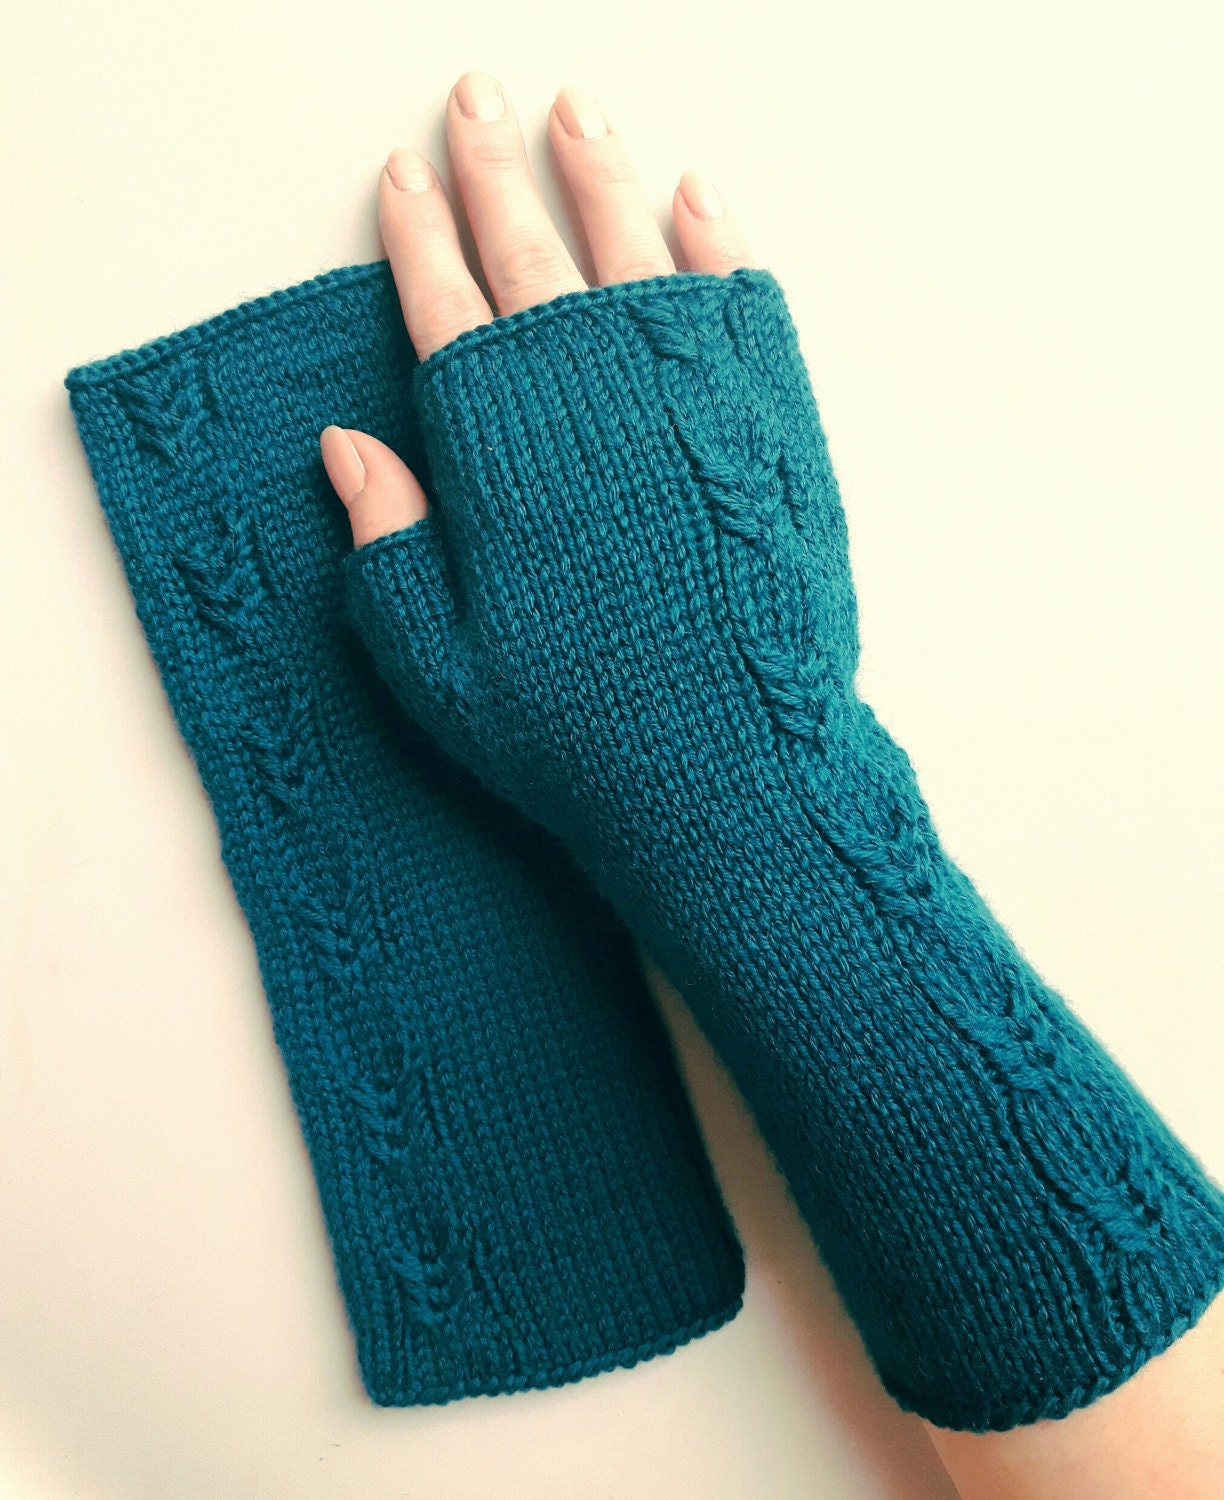 Choose from a great selection of cold weather gloves, mittens, arm warmers, and driving gloves at free-cabinetfile-downloaded.ga Free shipping and free returns eligible items.